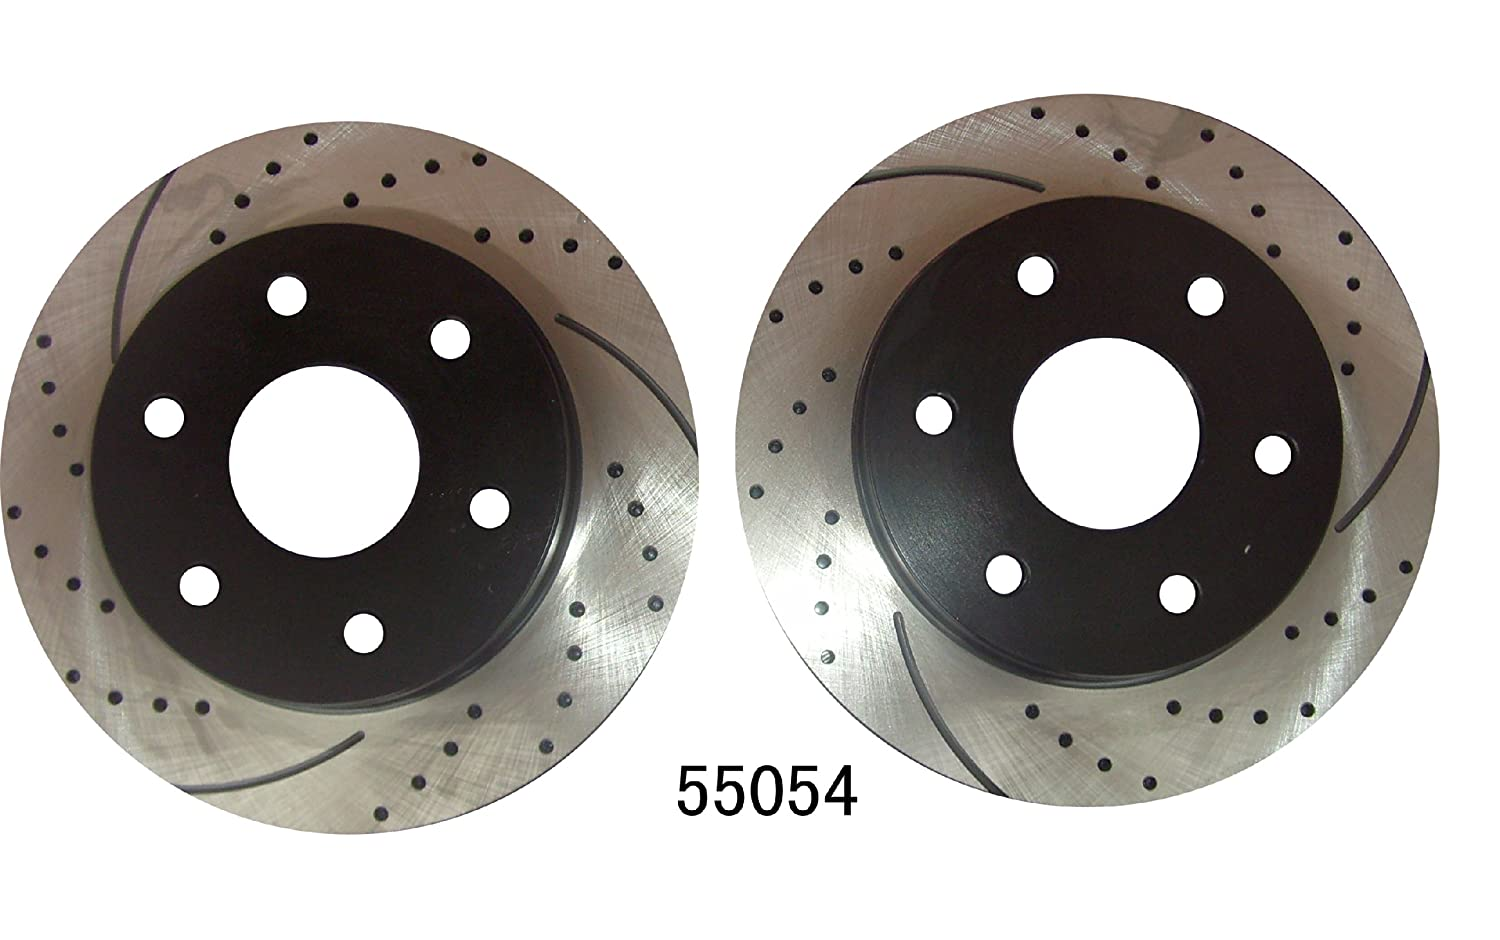 Front /& Rear Kit Performance Drilled//Slotted Brake Rotors and Carbon Fiber Pads Approved Performance G21176